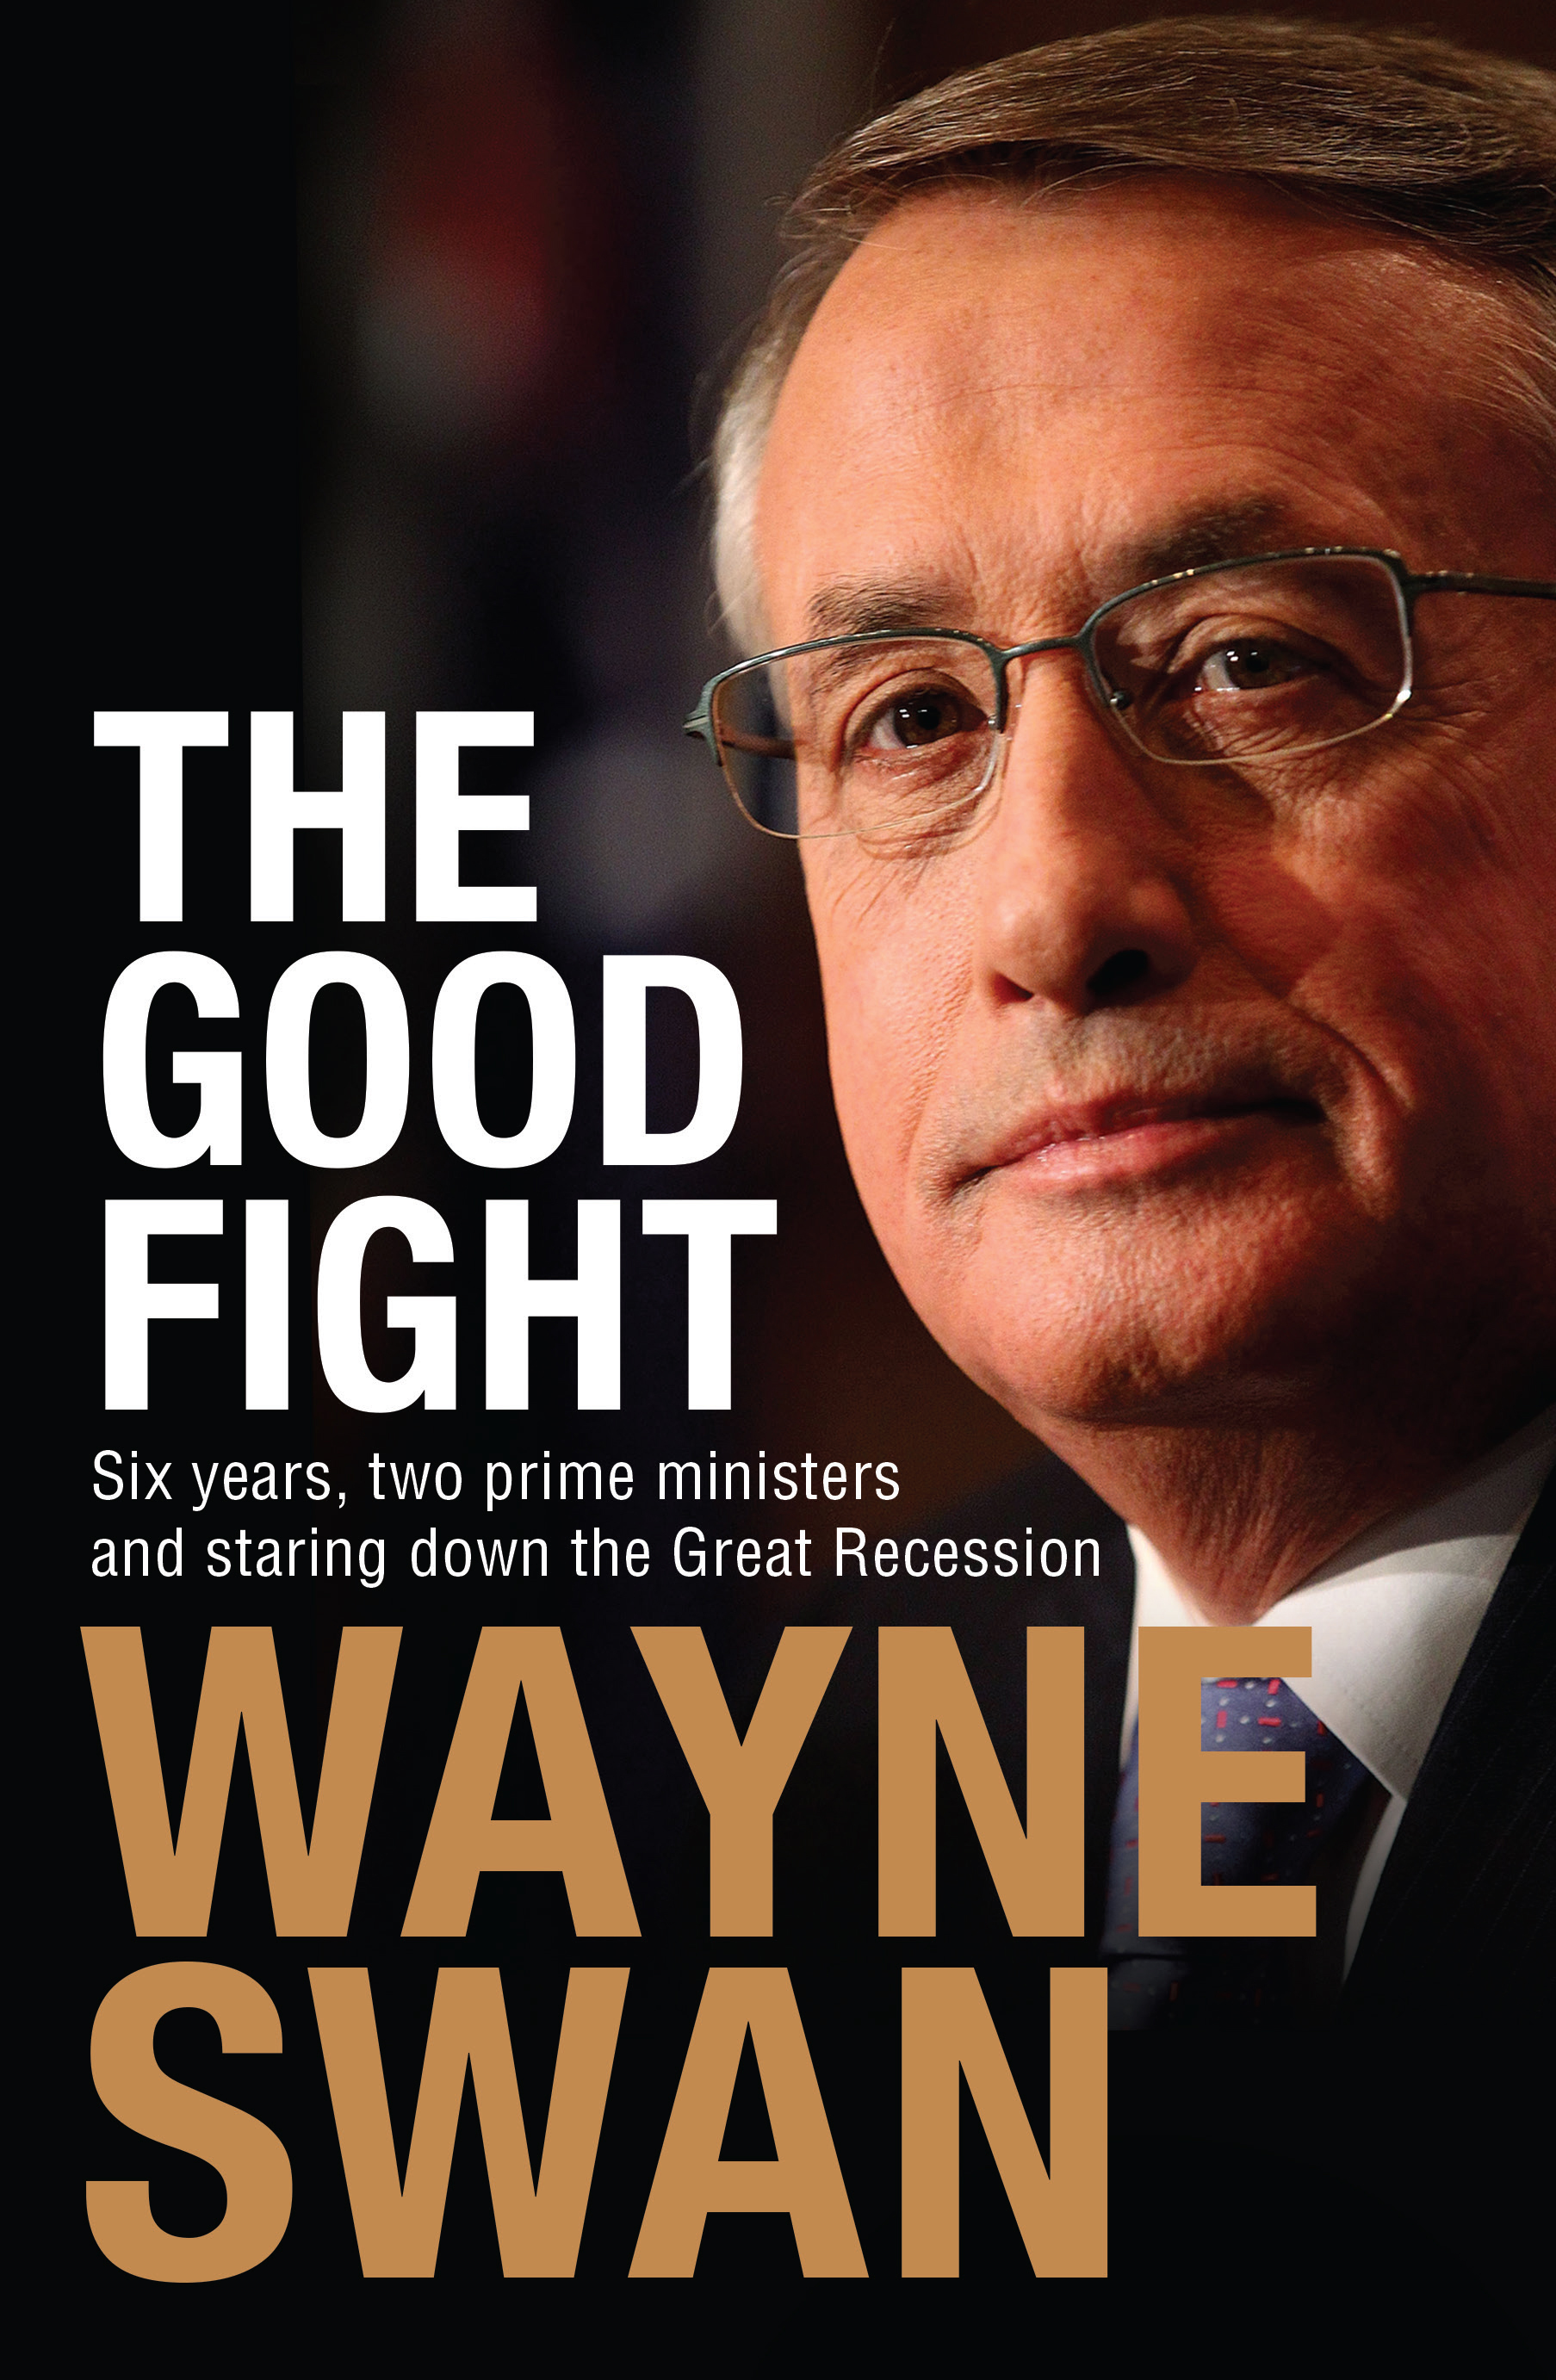 the good fight wayne swan 9781743319352 allen unwin cover